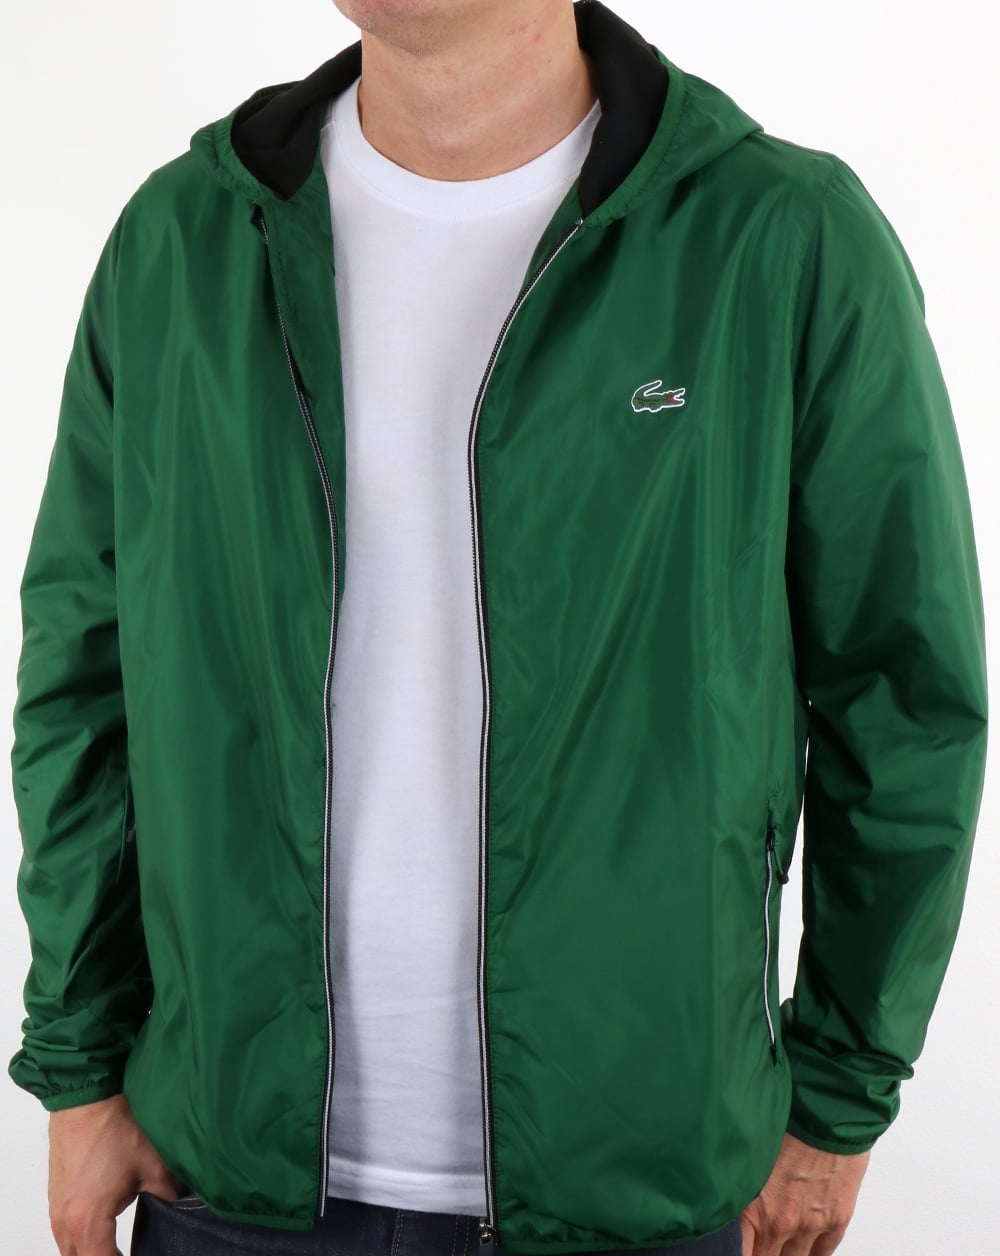 7a099a6f620c56 Lacoste Hooded Jacket Green